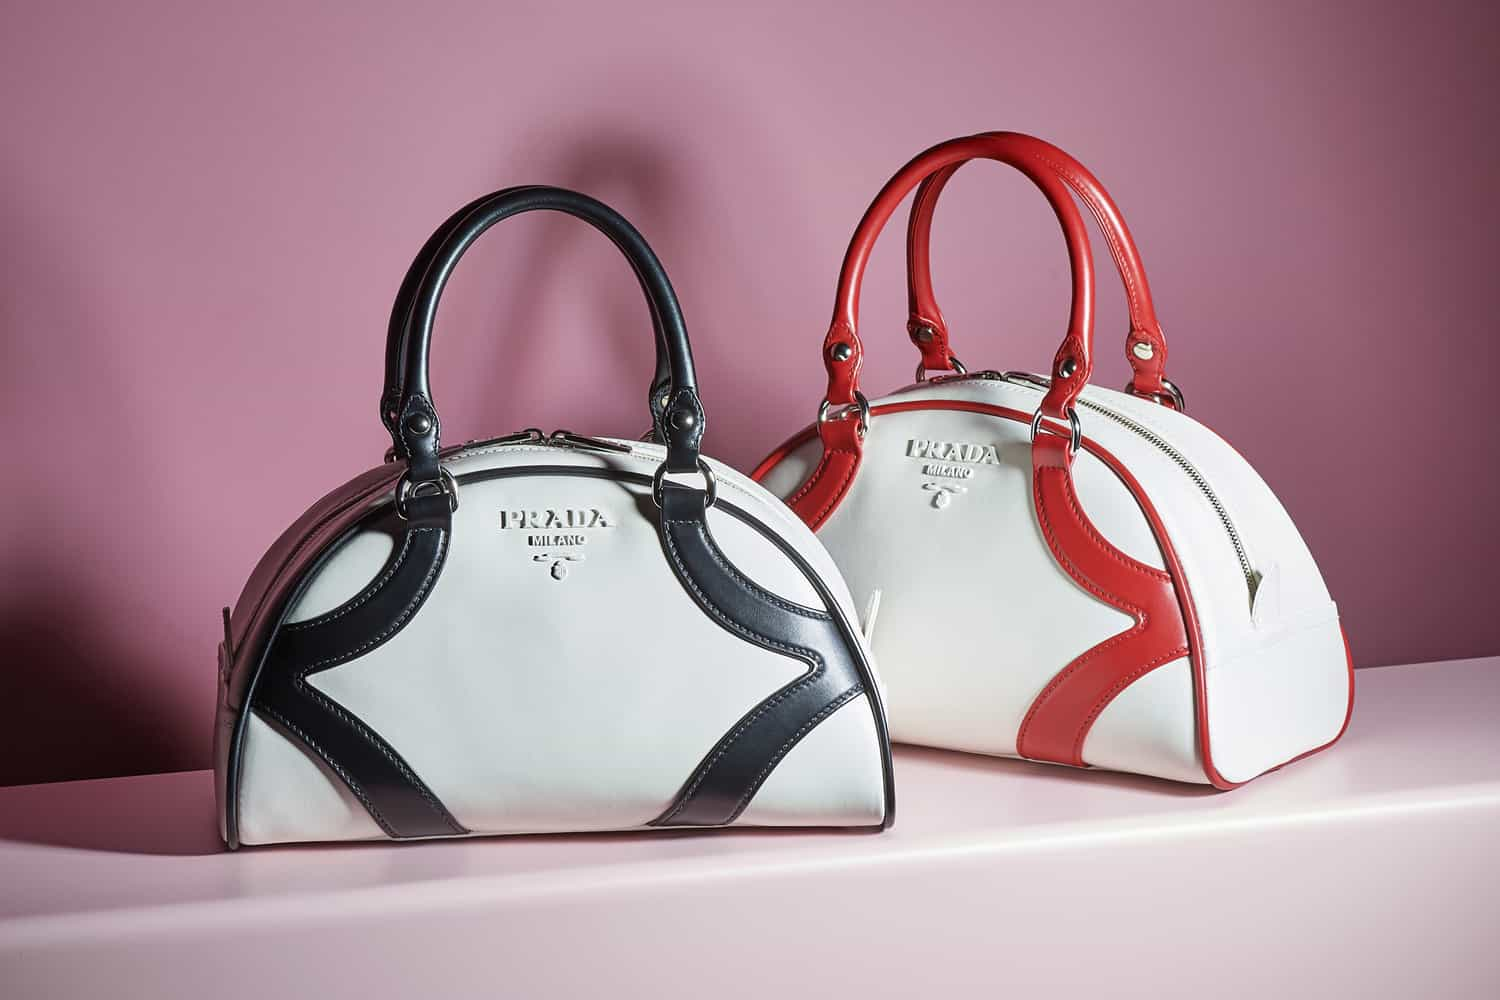 ccad6a350a52 For Resort 2020 Miuccia Prada took a trip down memory lane: she reissued  the Prada Bowling Bag in honor of its 20th anniversary! Eagle eye fans will  notice ...